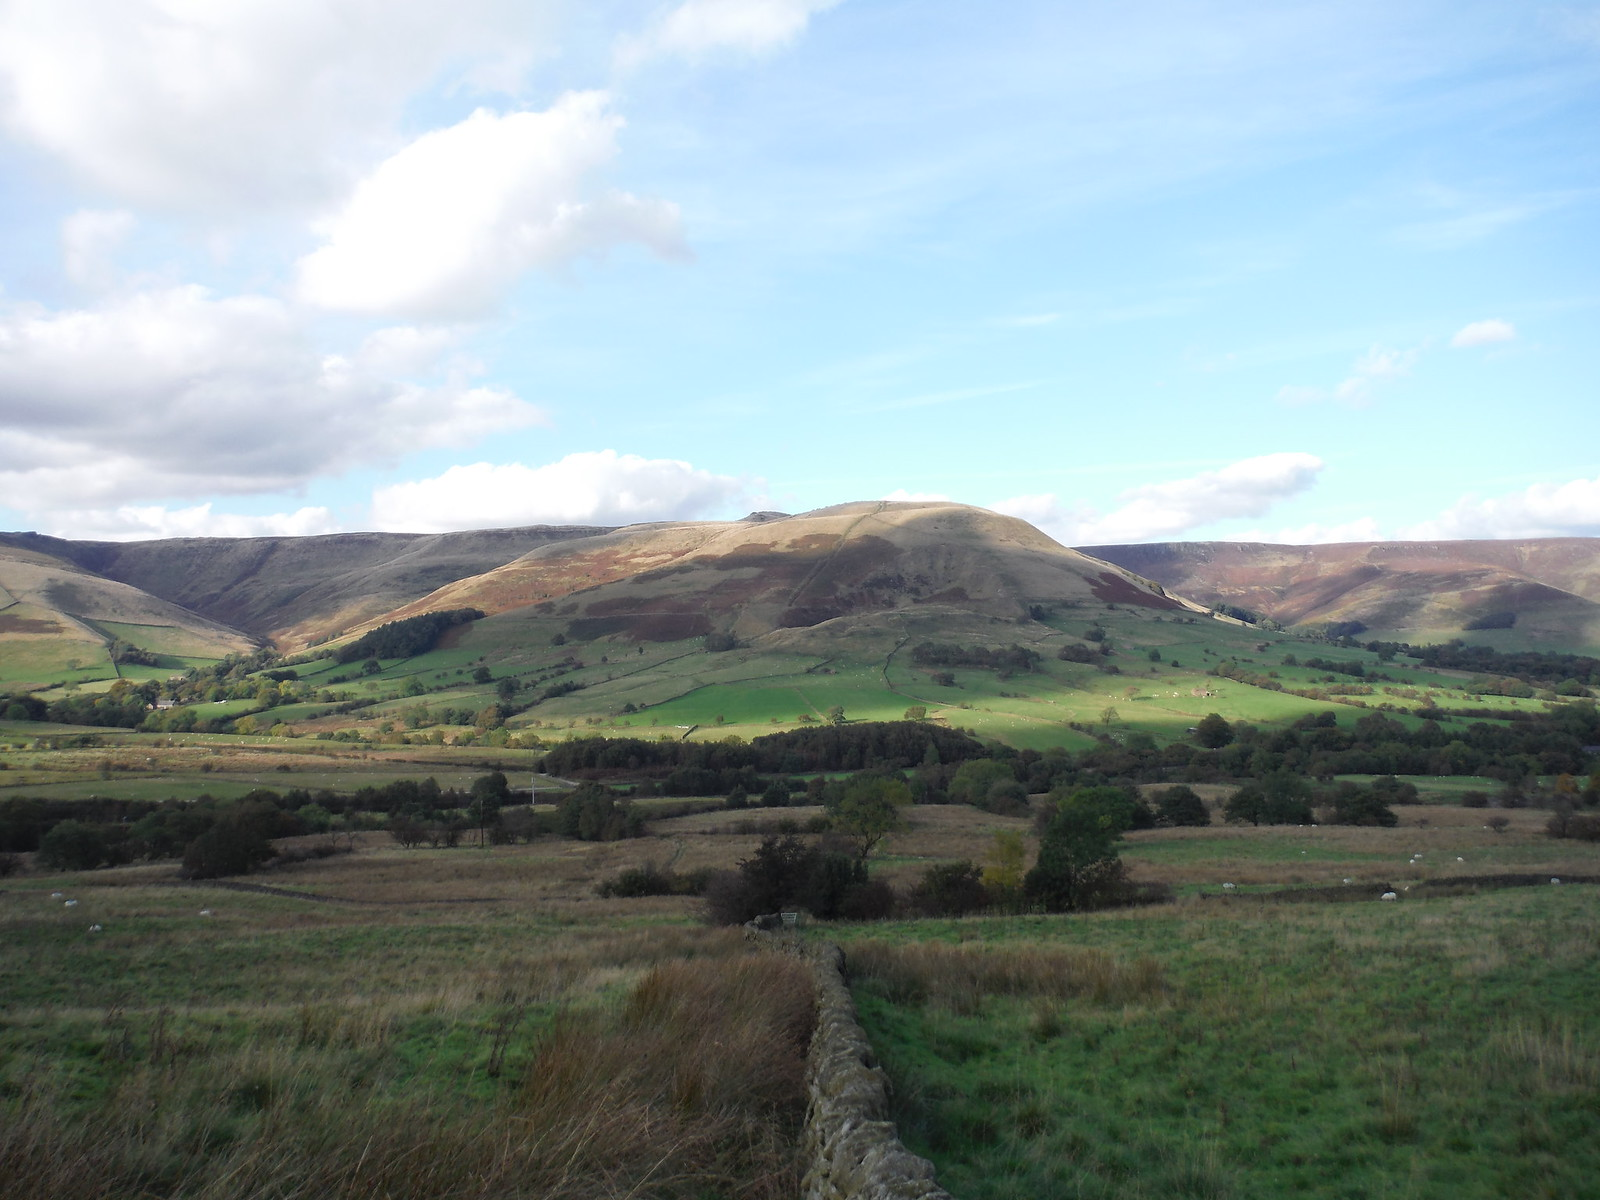 Crowden Clough and Grindslow Knoll, from near Manor House Farm SWC Walk 302 - Bamford to Edale (via Win Hill and Great Ridge)